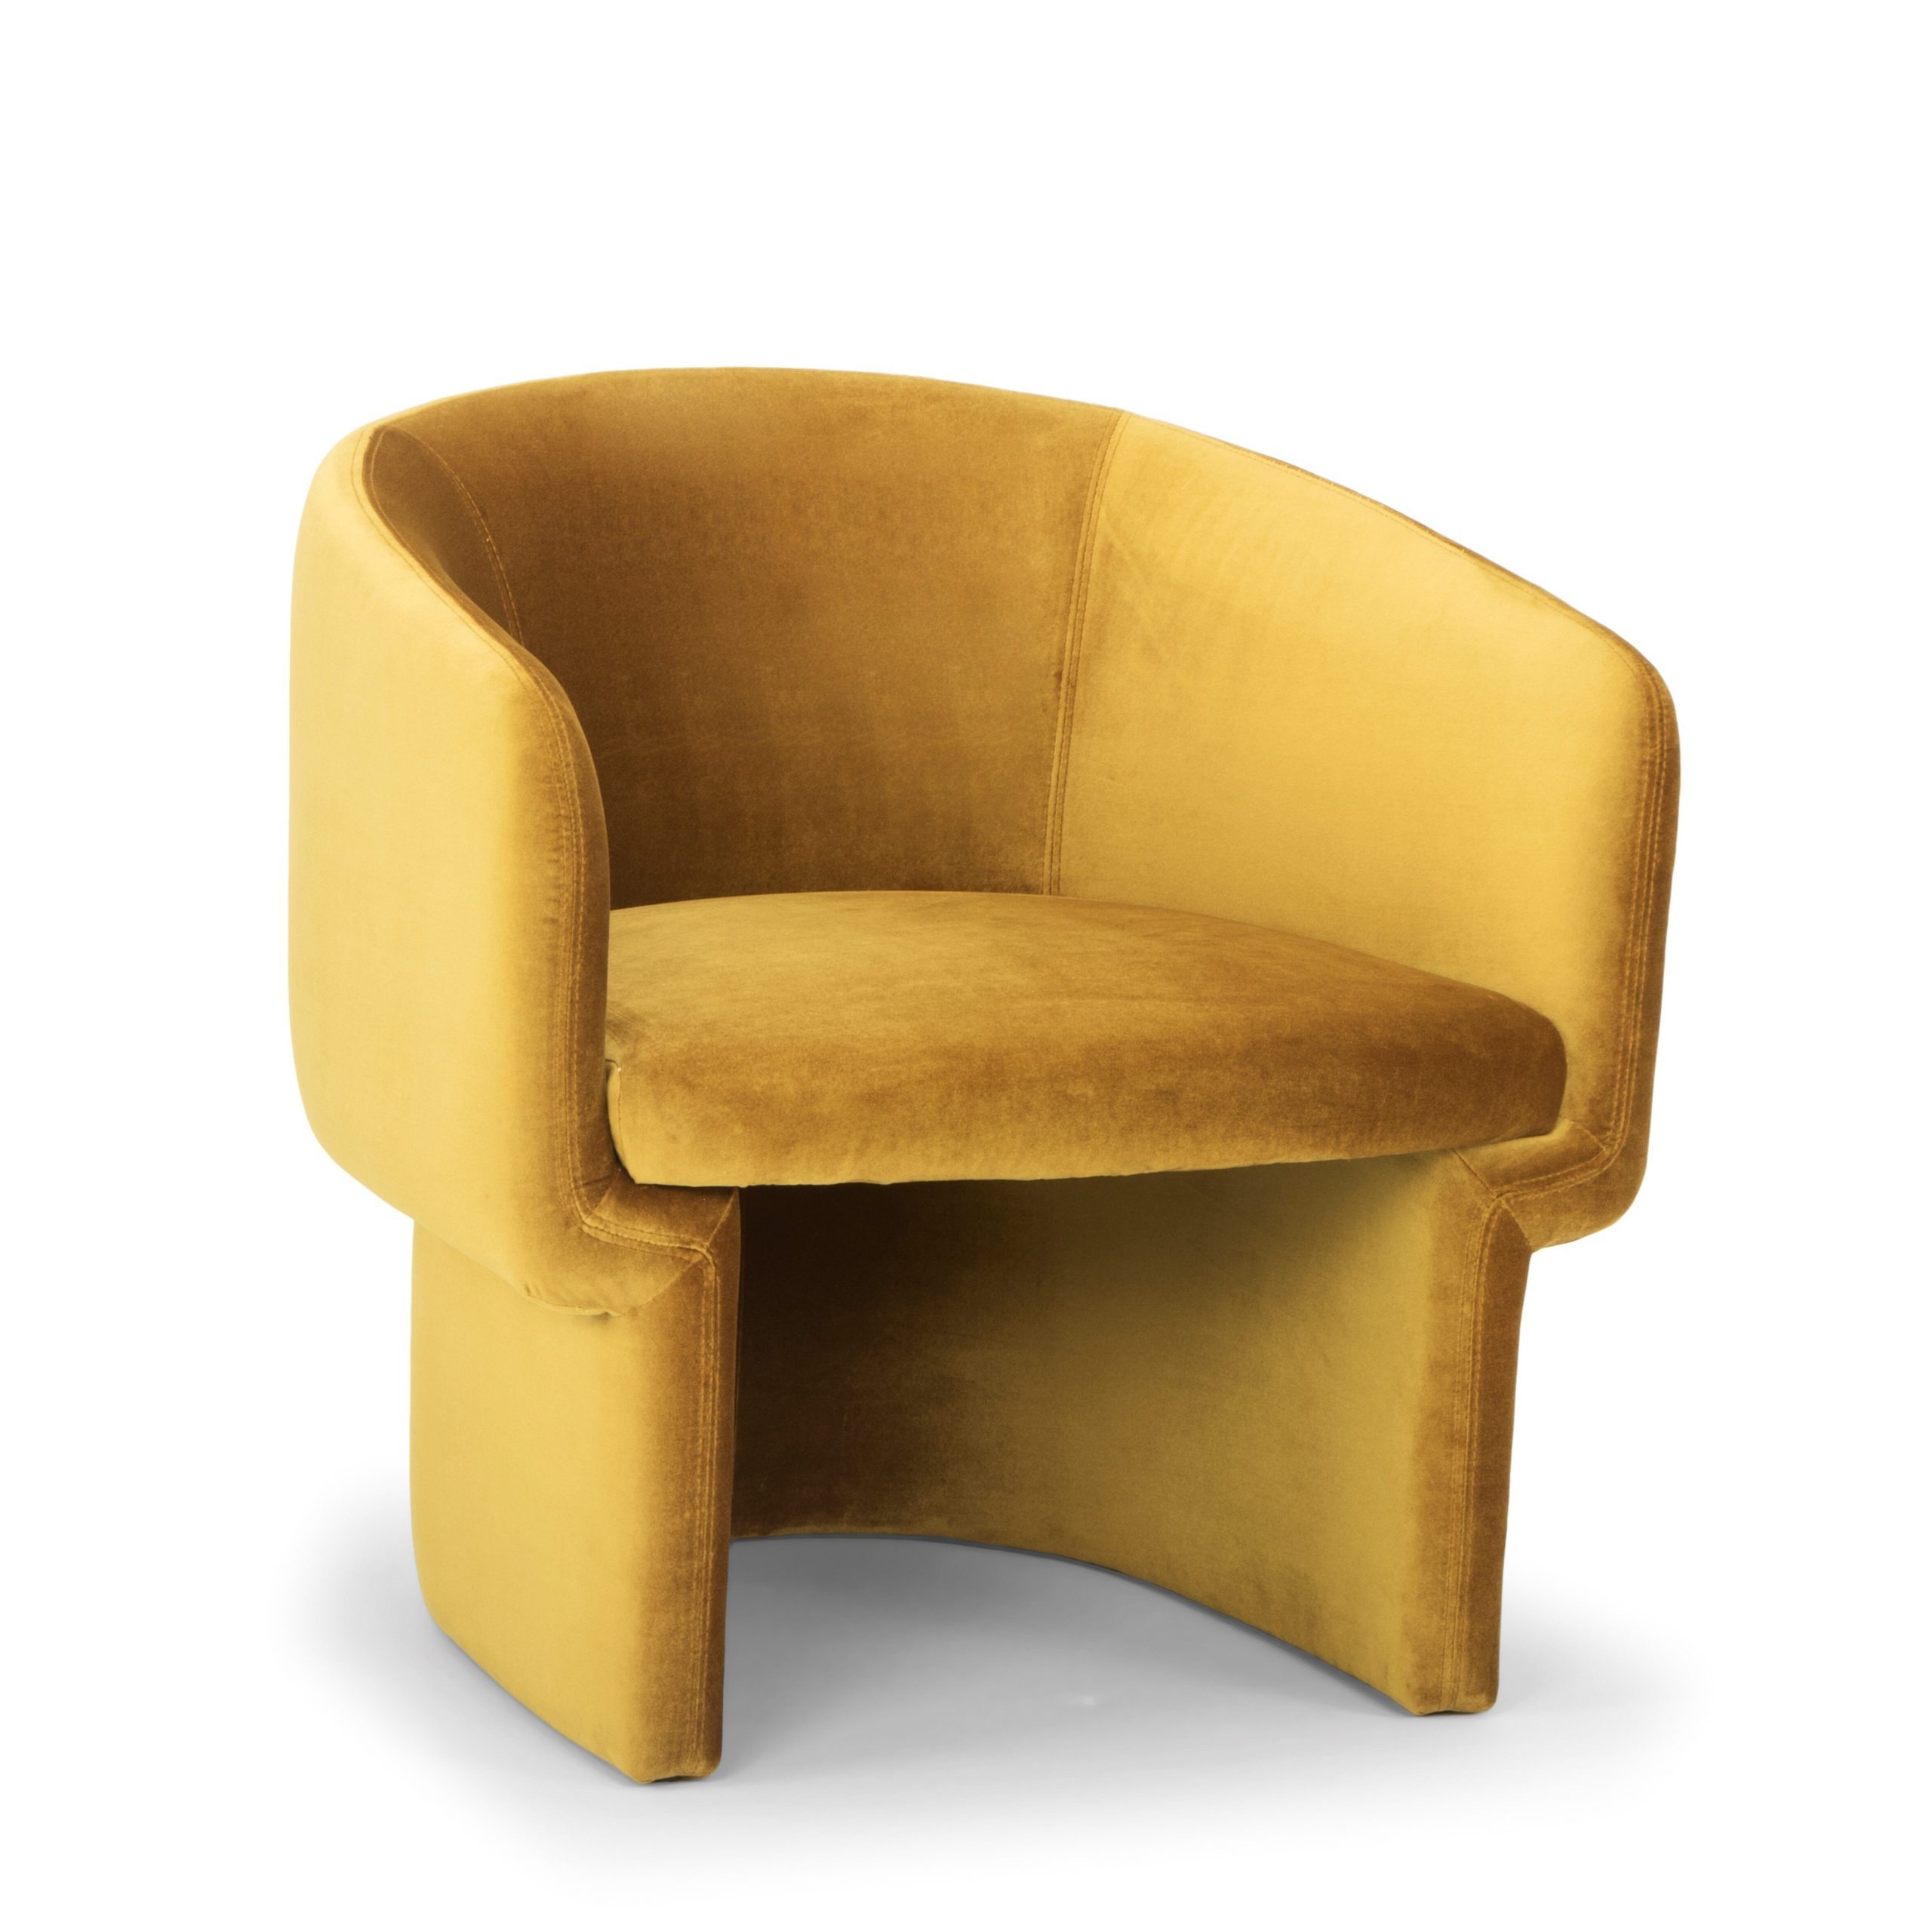 Barrel Yellow Accent Chairs You'Ll Love In 2021 | Wayfair Pertaining To Coomer Faux Leather Barrel Chairs (View 5 of 15)